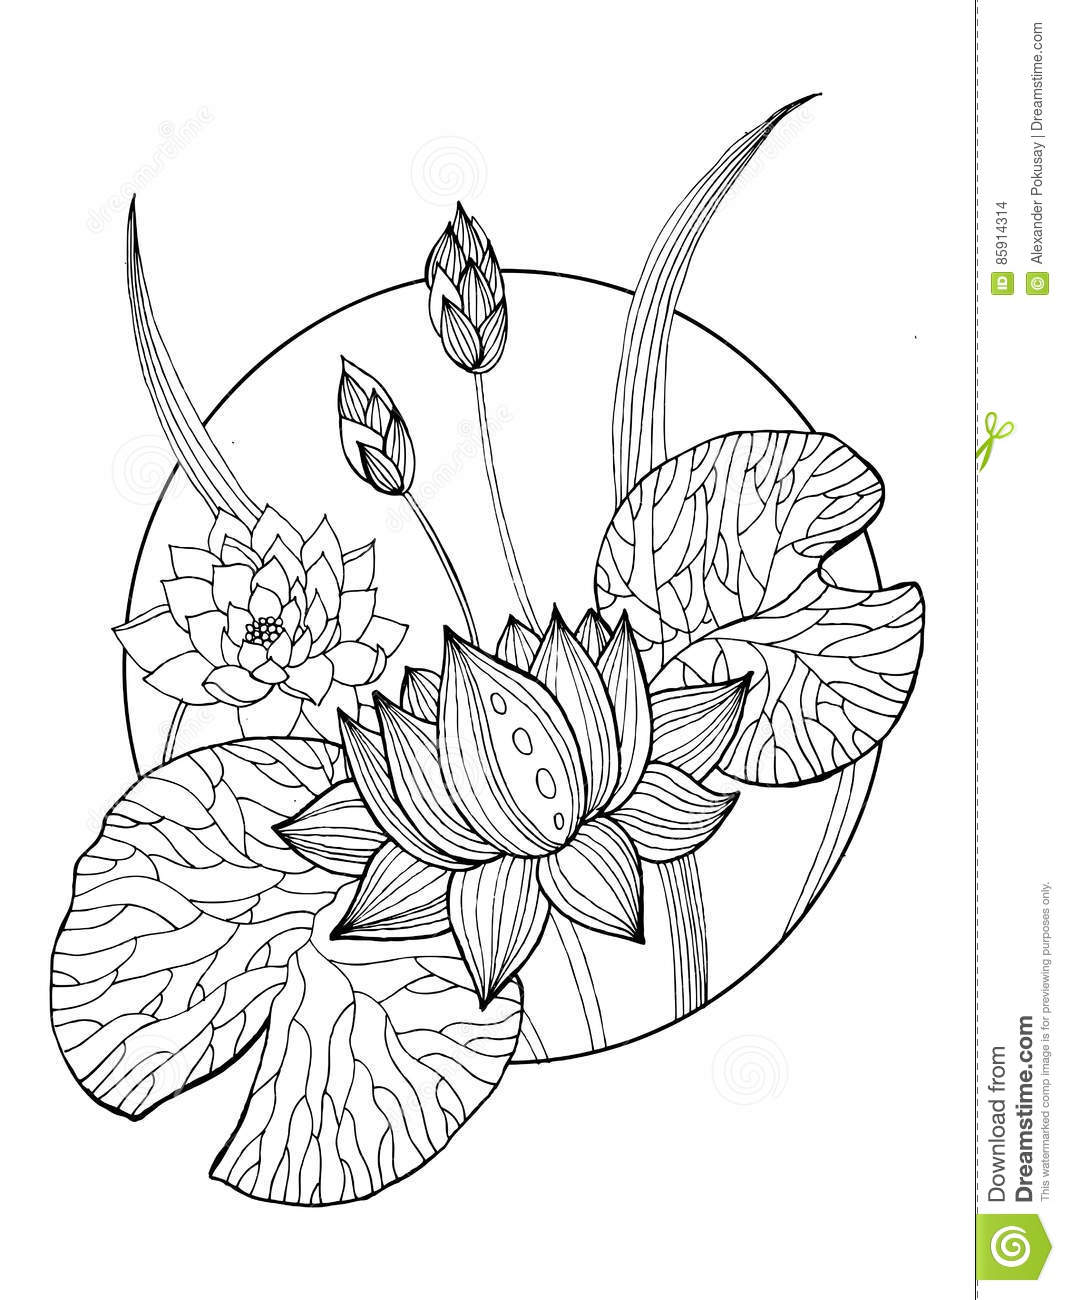 Lotus Flower Coloring Book Vector Illustration Stock Vector